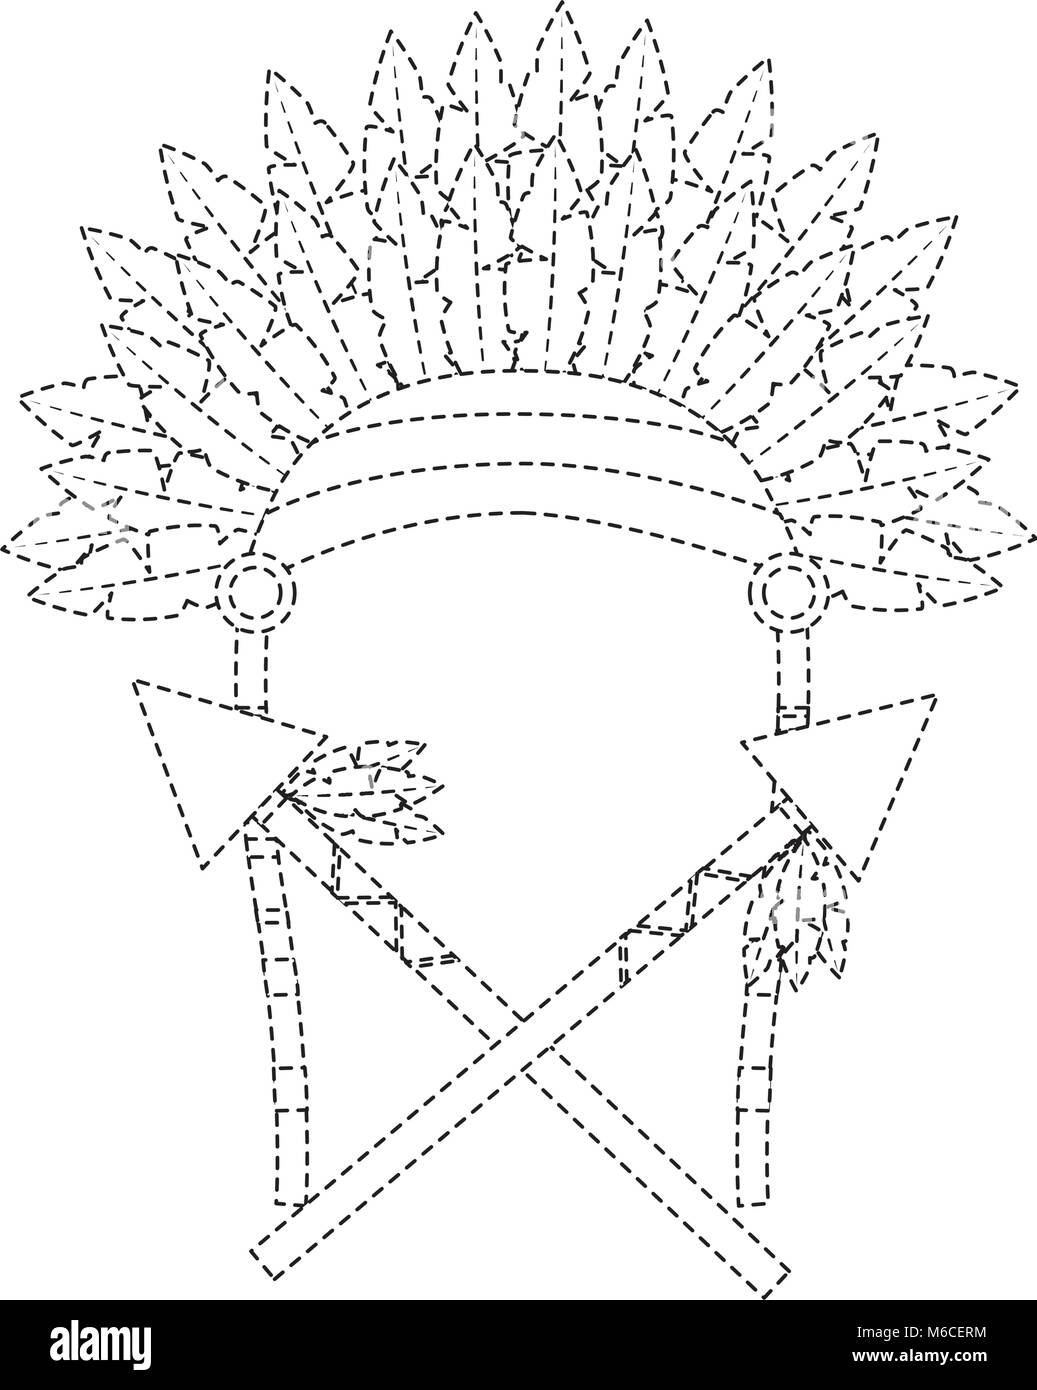 headdress native american icon image  - Stock Image